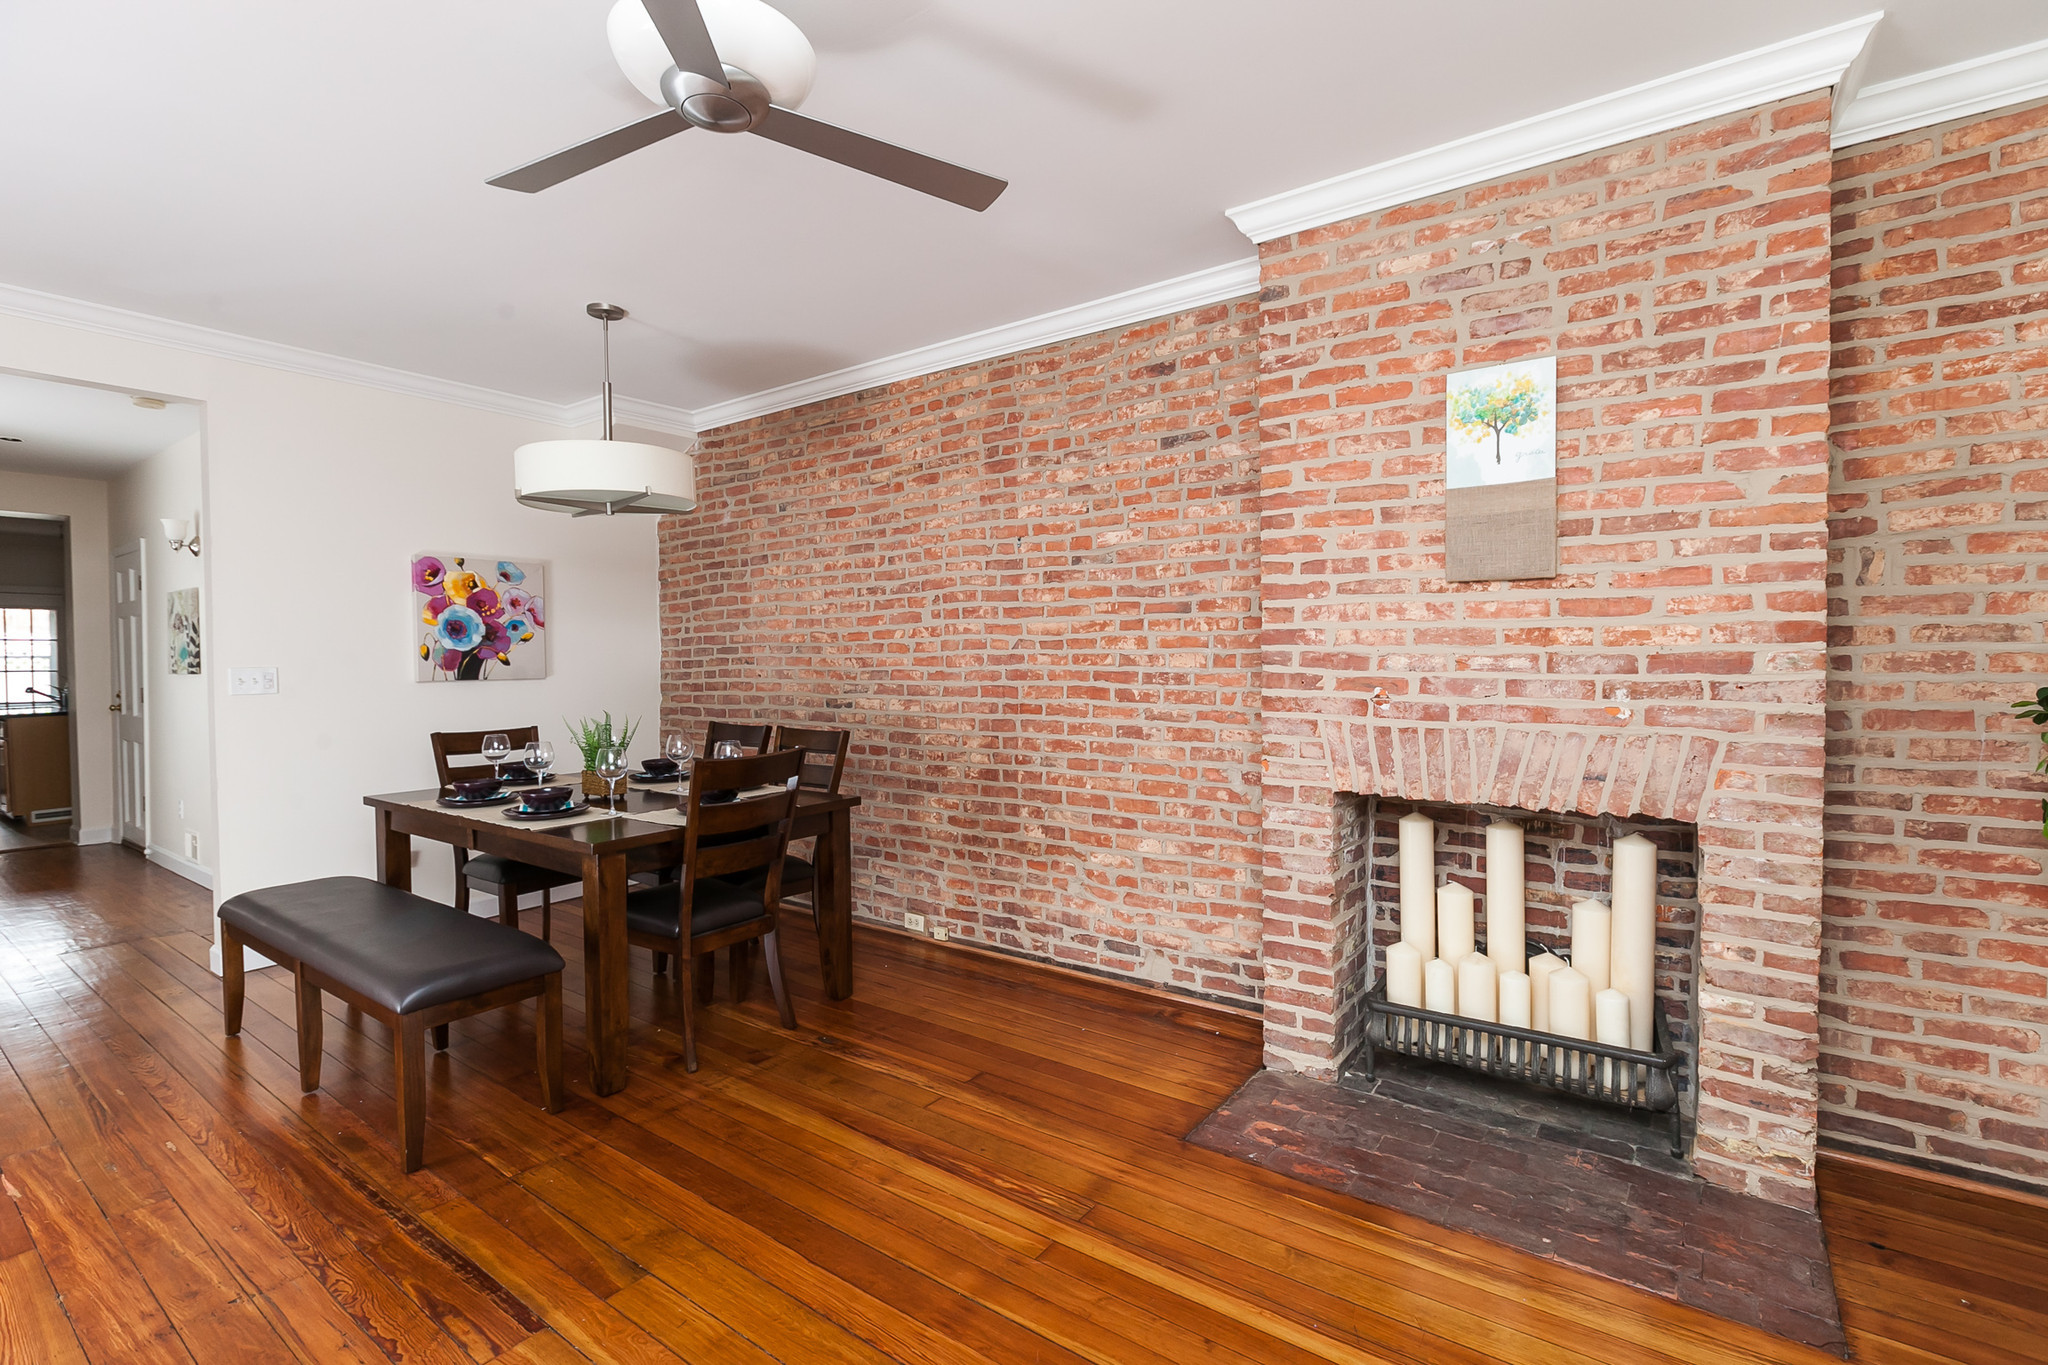 Exposed Brick Wall What You Need To Know About Exposing Brick Baltimore Sun